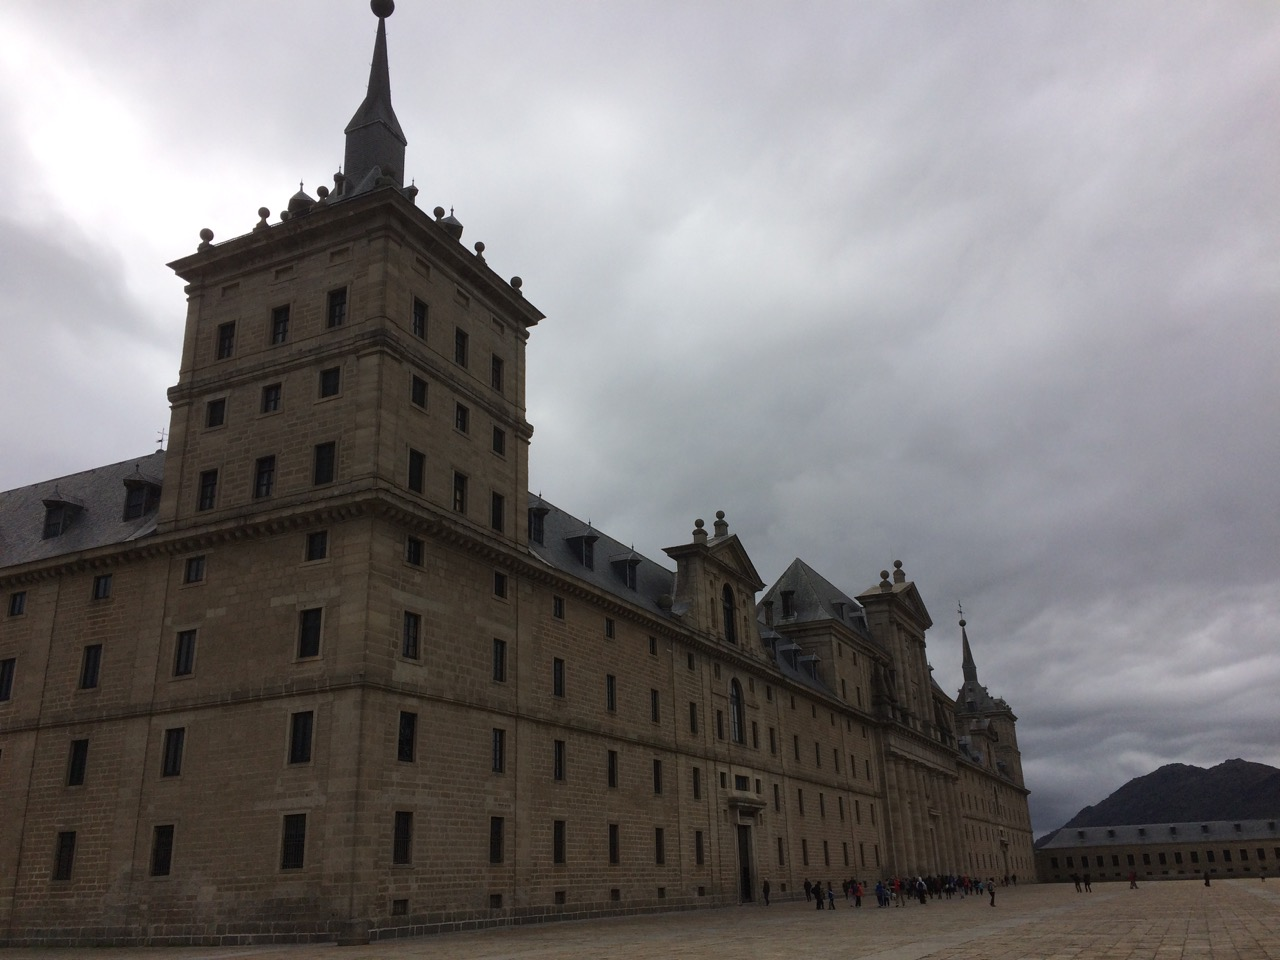 Under gray clouds it looks more like a fortress than a monastery or palace